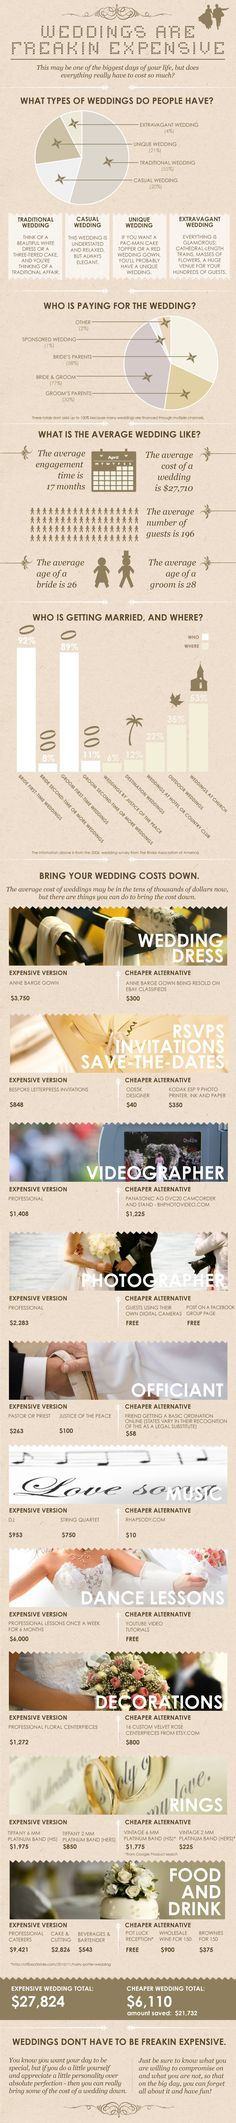 """Ways to save on weddings. Be aware, of the """"expense"""" of spending less. Example, very few would (or should!) go completely without a professional photographer! 